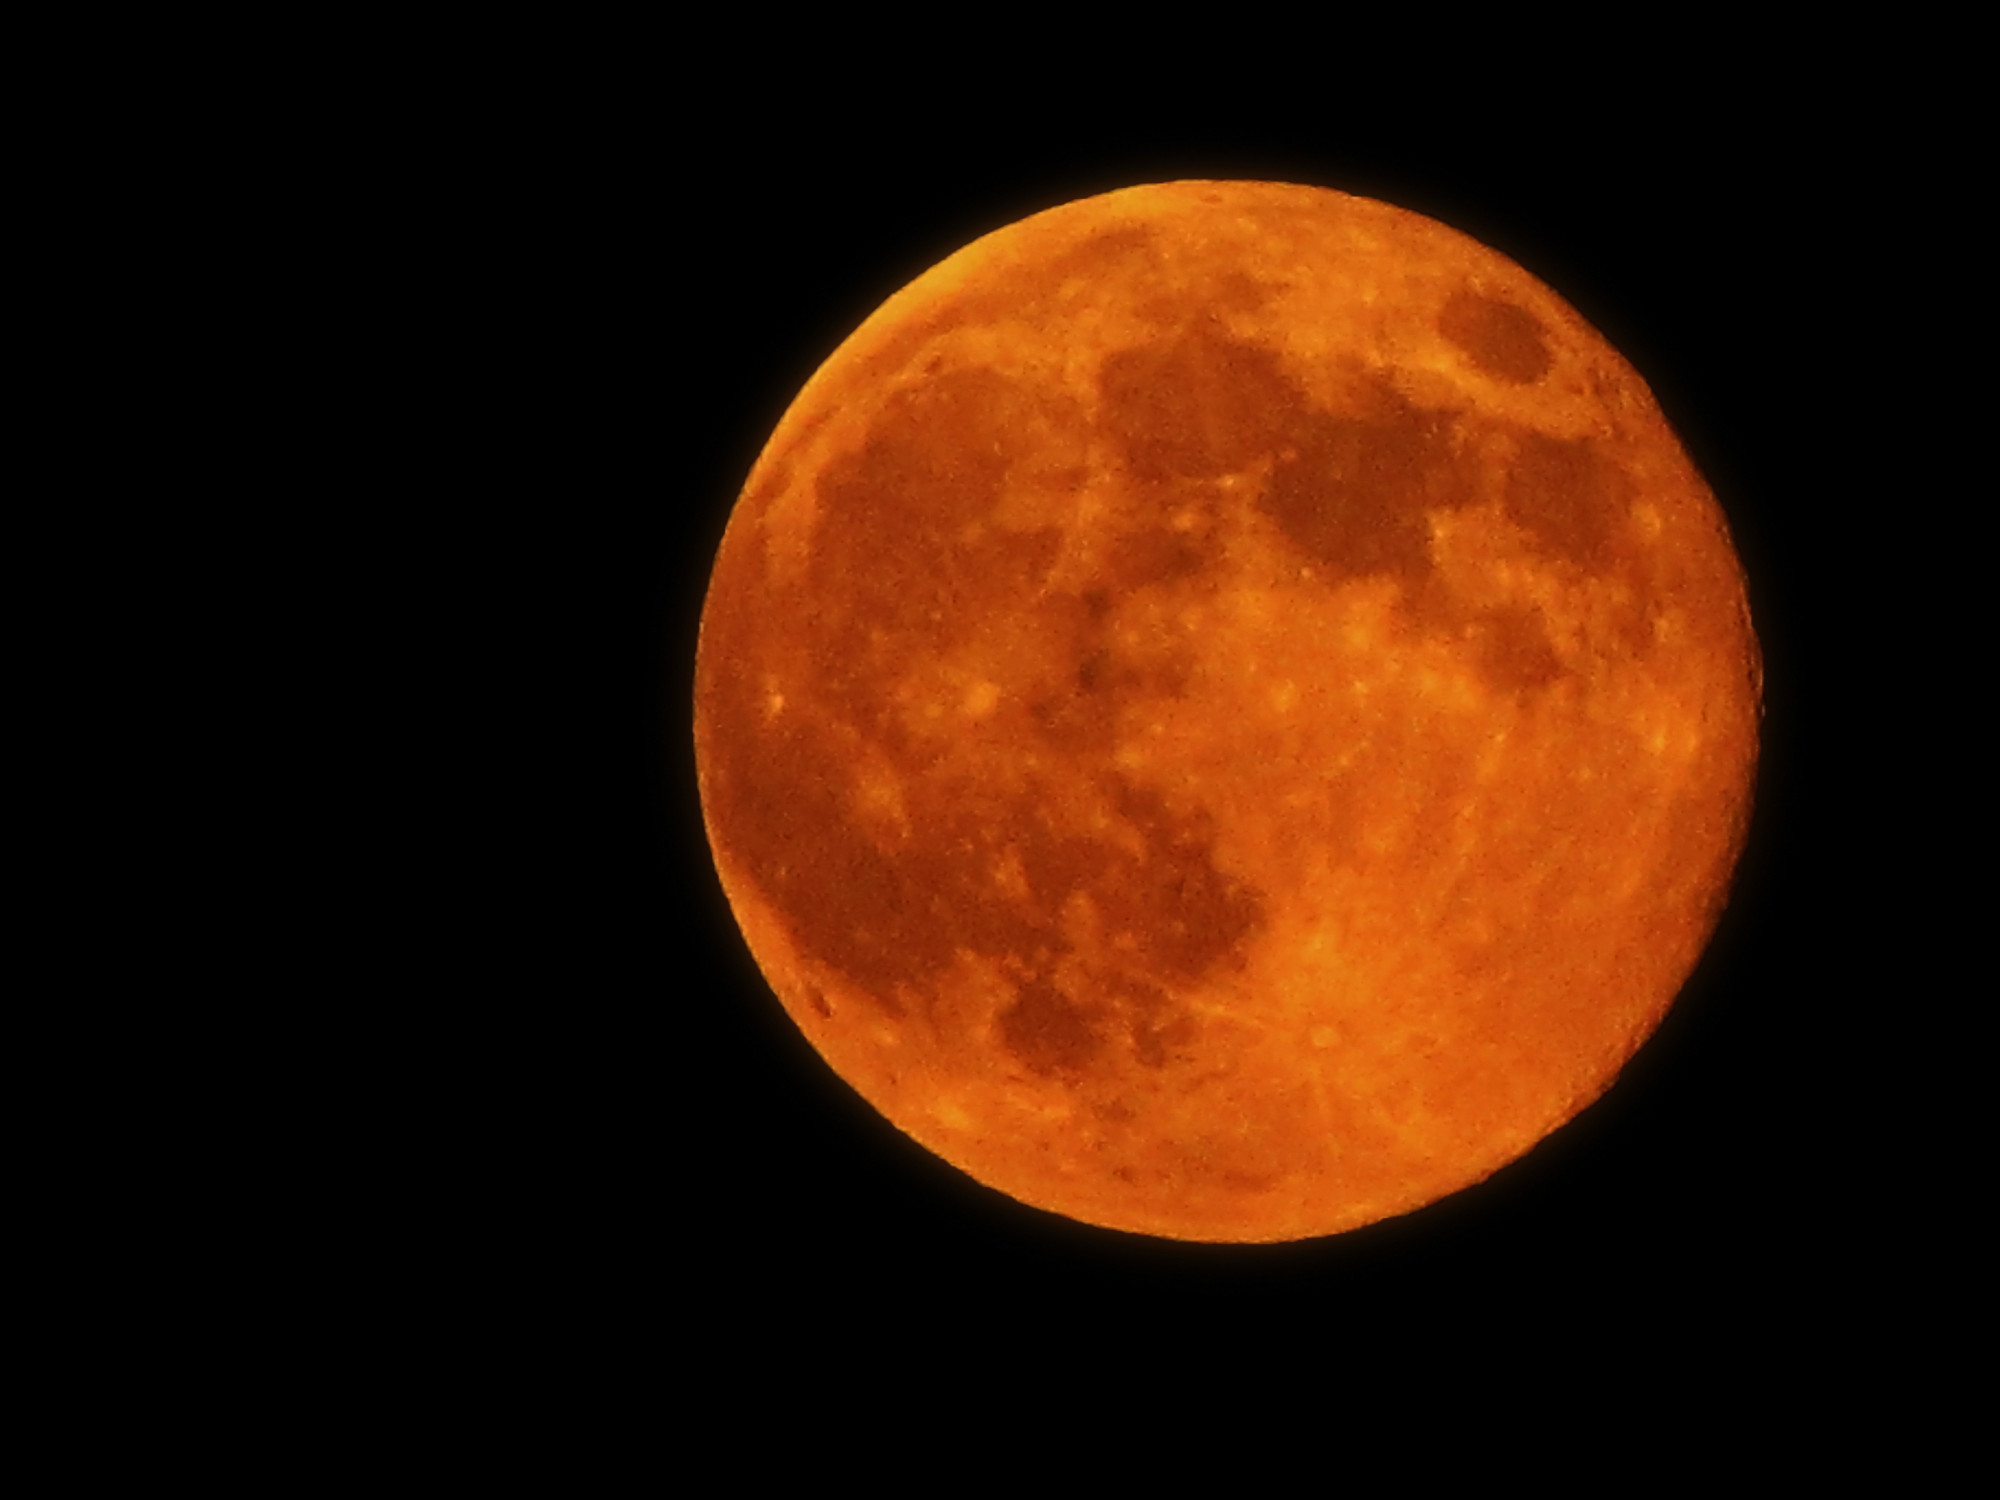 Harvest Moon 2013: How To See The Full Moon On September